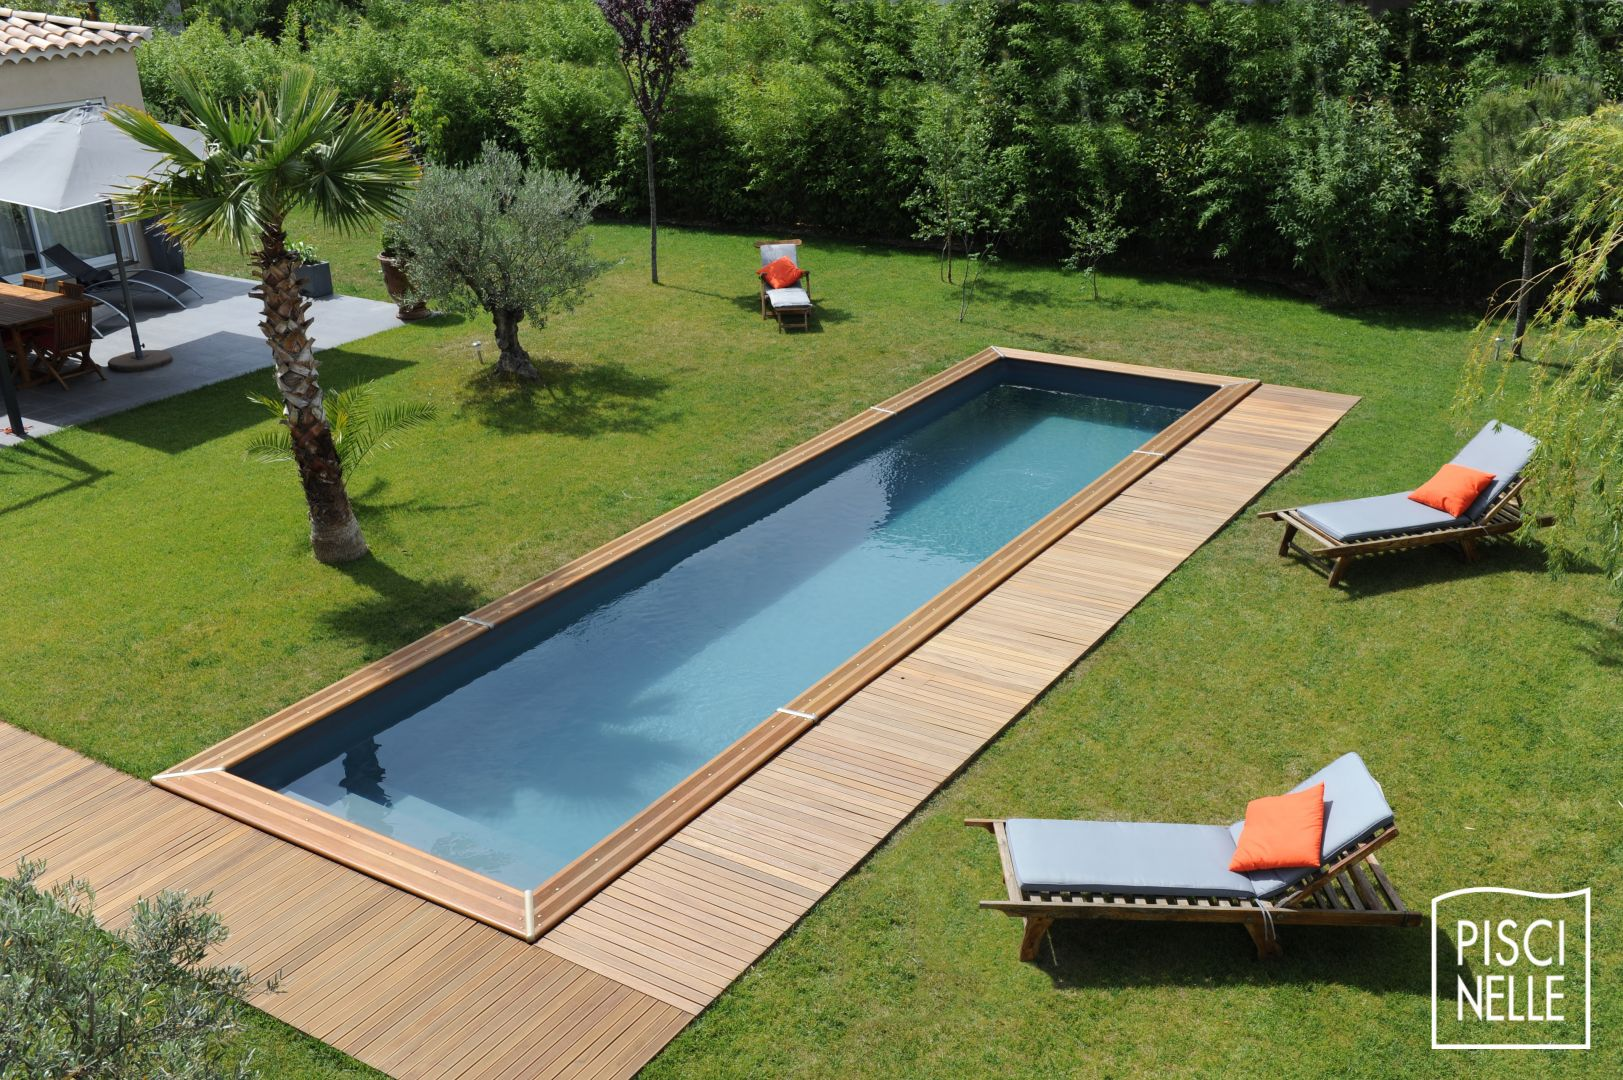 Piscine enterr e les piscines enterr es en kit par for Dimension piscine semi enterree